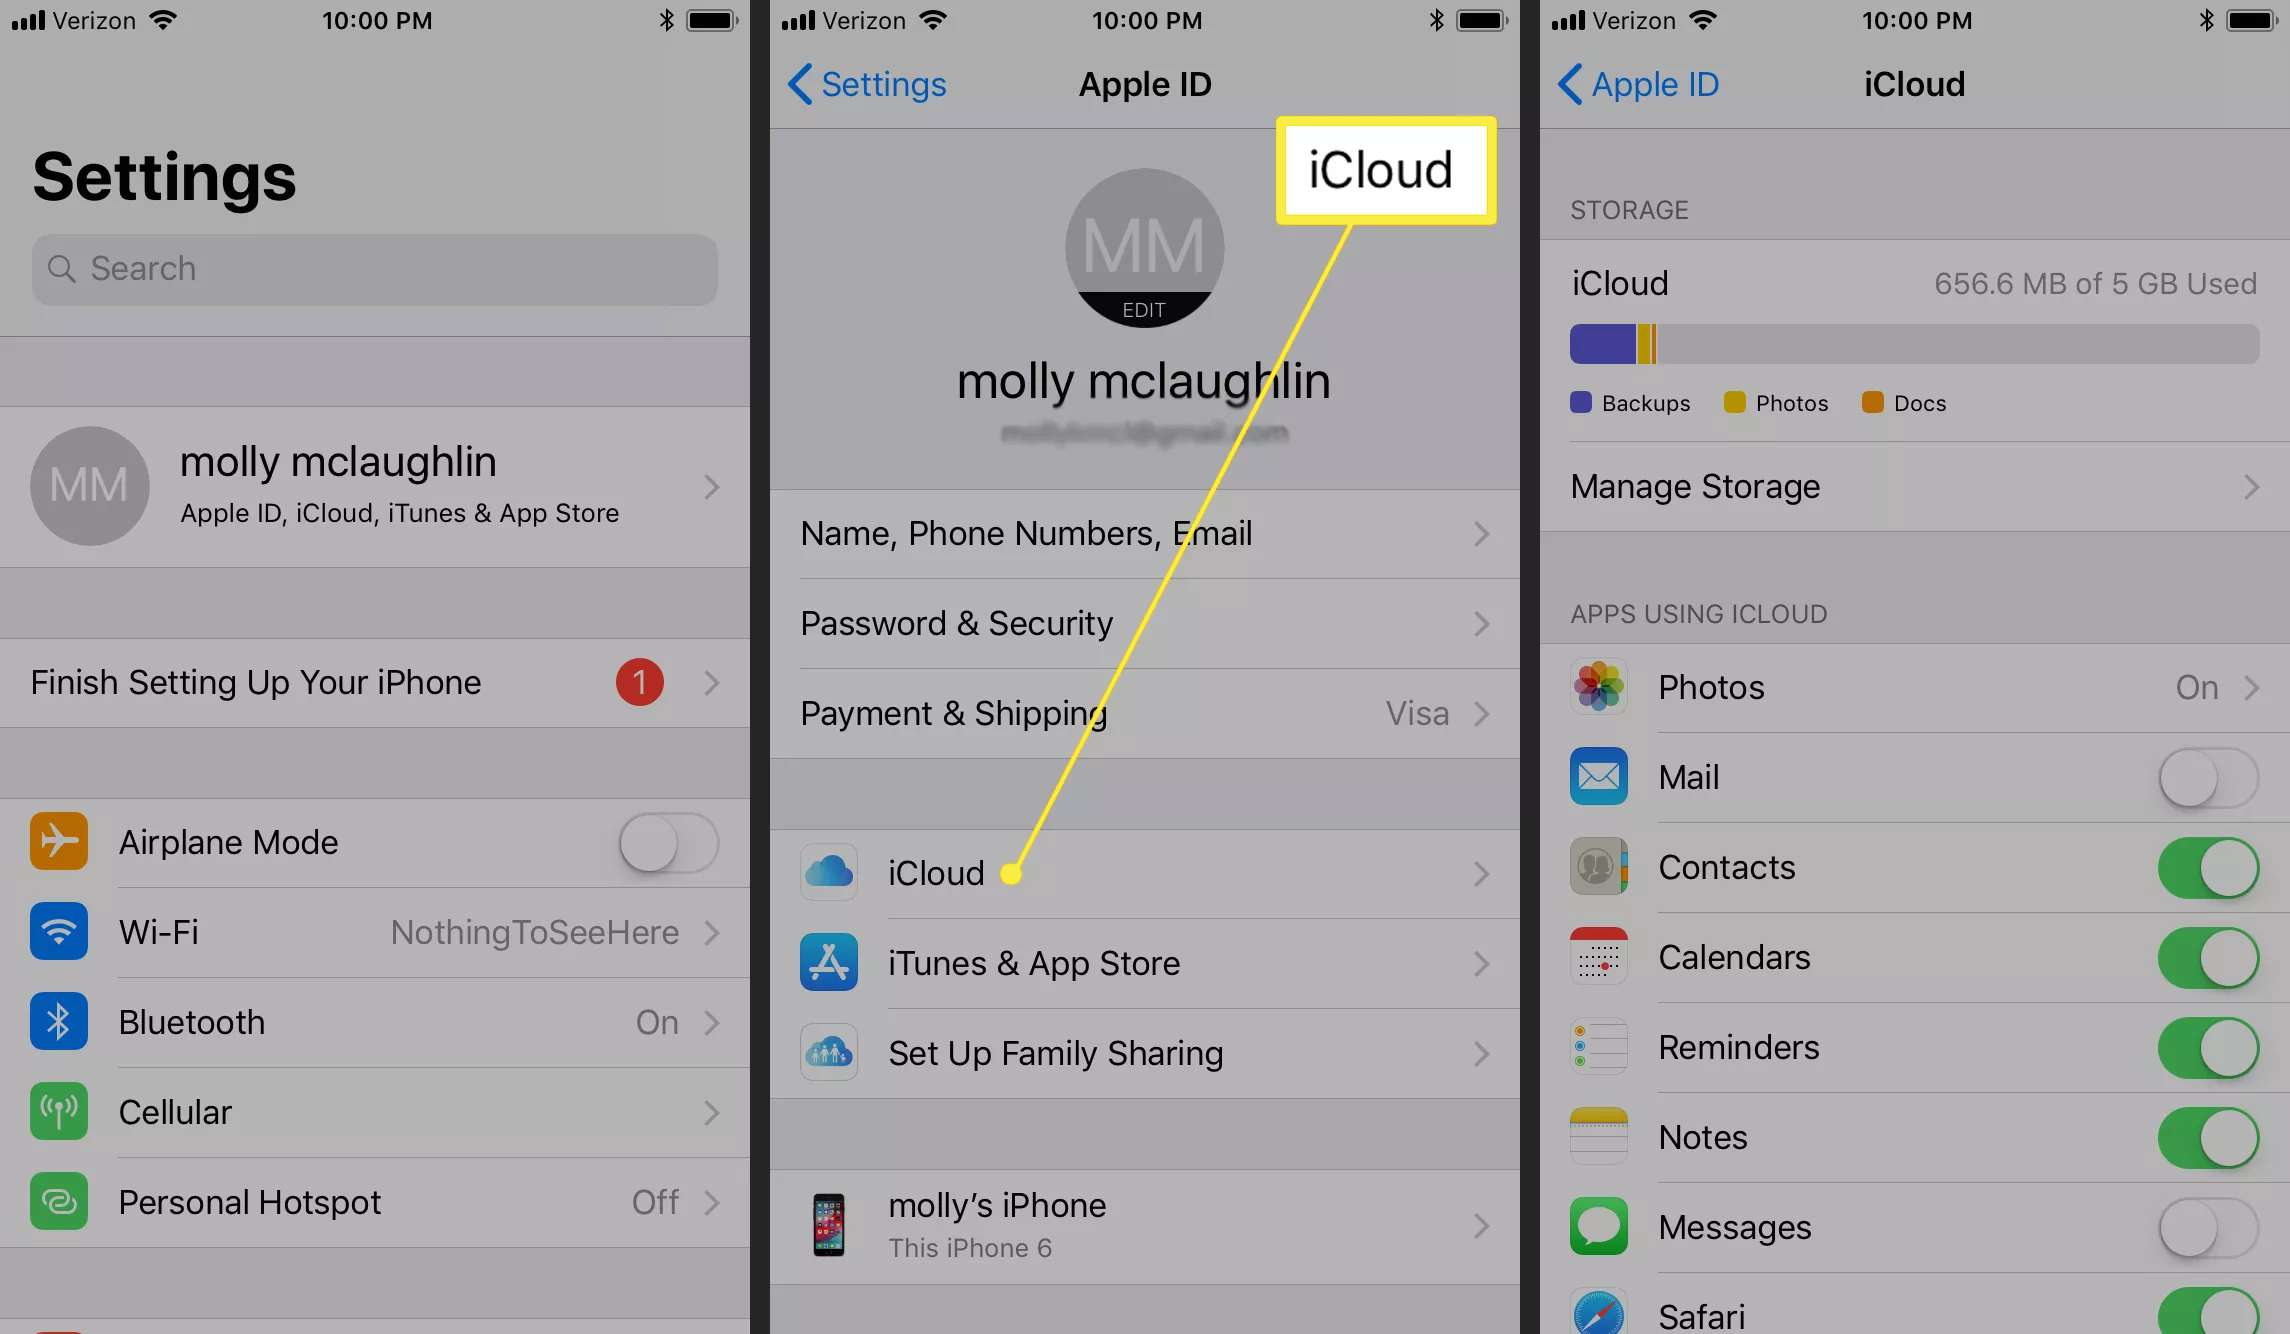 Screenshots of iOS settings with 'iCloud' highlighted